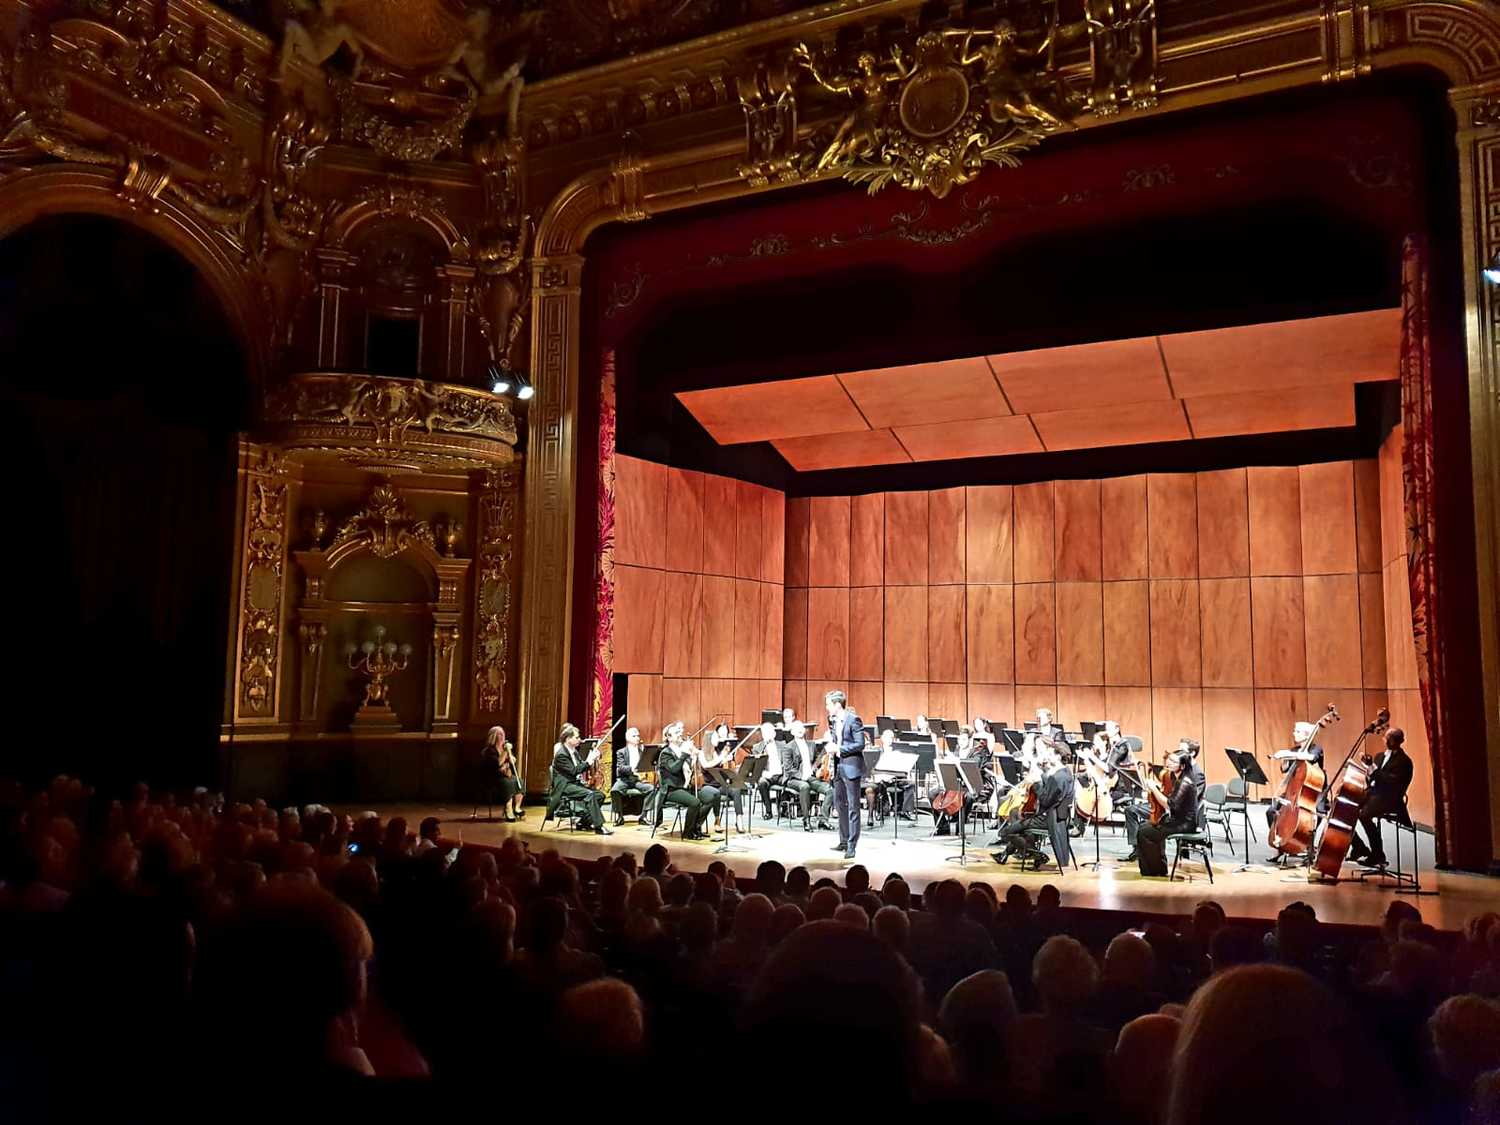 BWW Review: AN AFTERNOON WITH THE MASTERS OF CLASSICISM at Opera Garnier Monte-Carlo